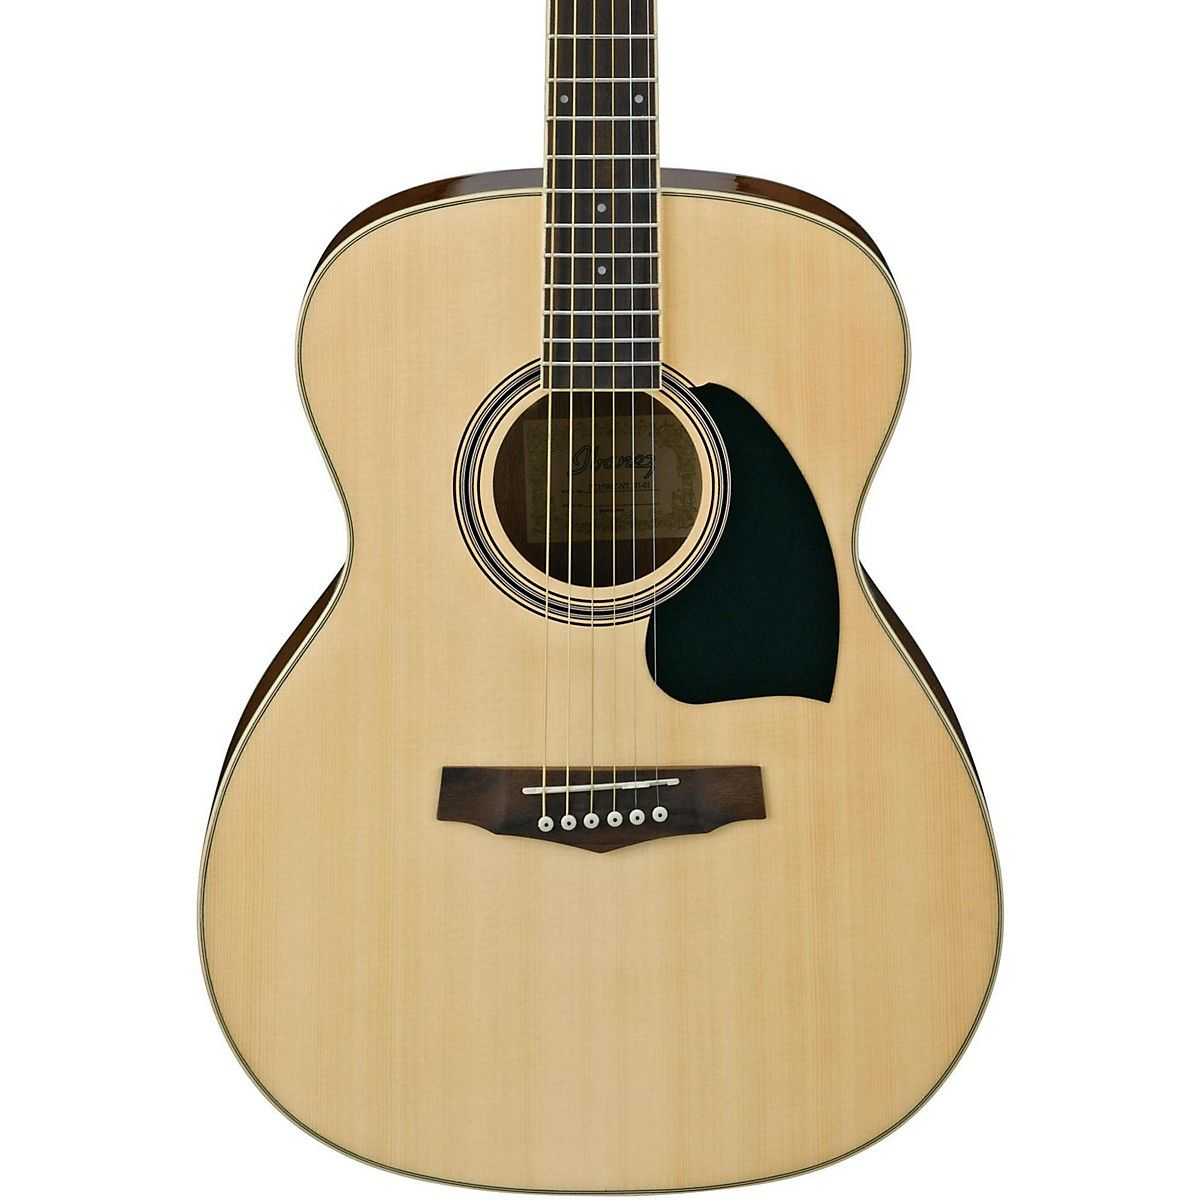 Ibanez Pc15nt Performance Grand Concert Acoustic Guitar In 2020 Acoustic Guitar Guitar Ibanez